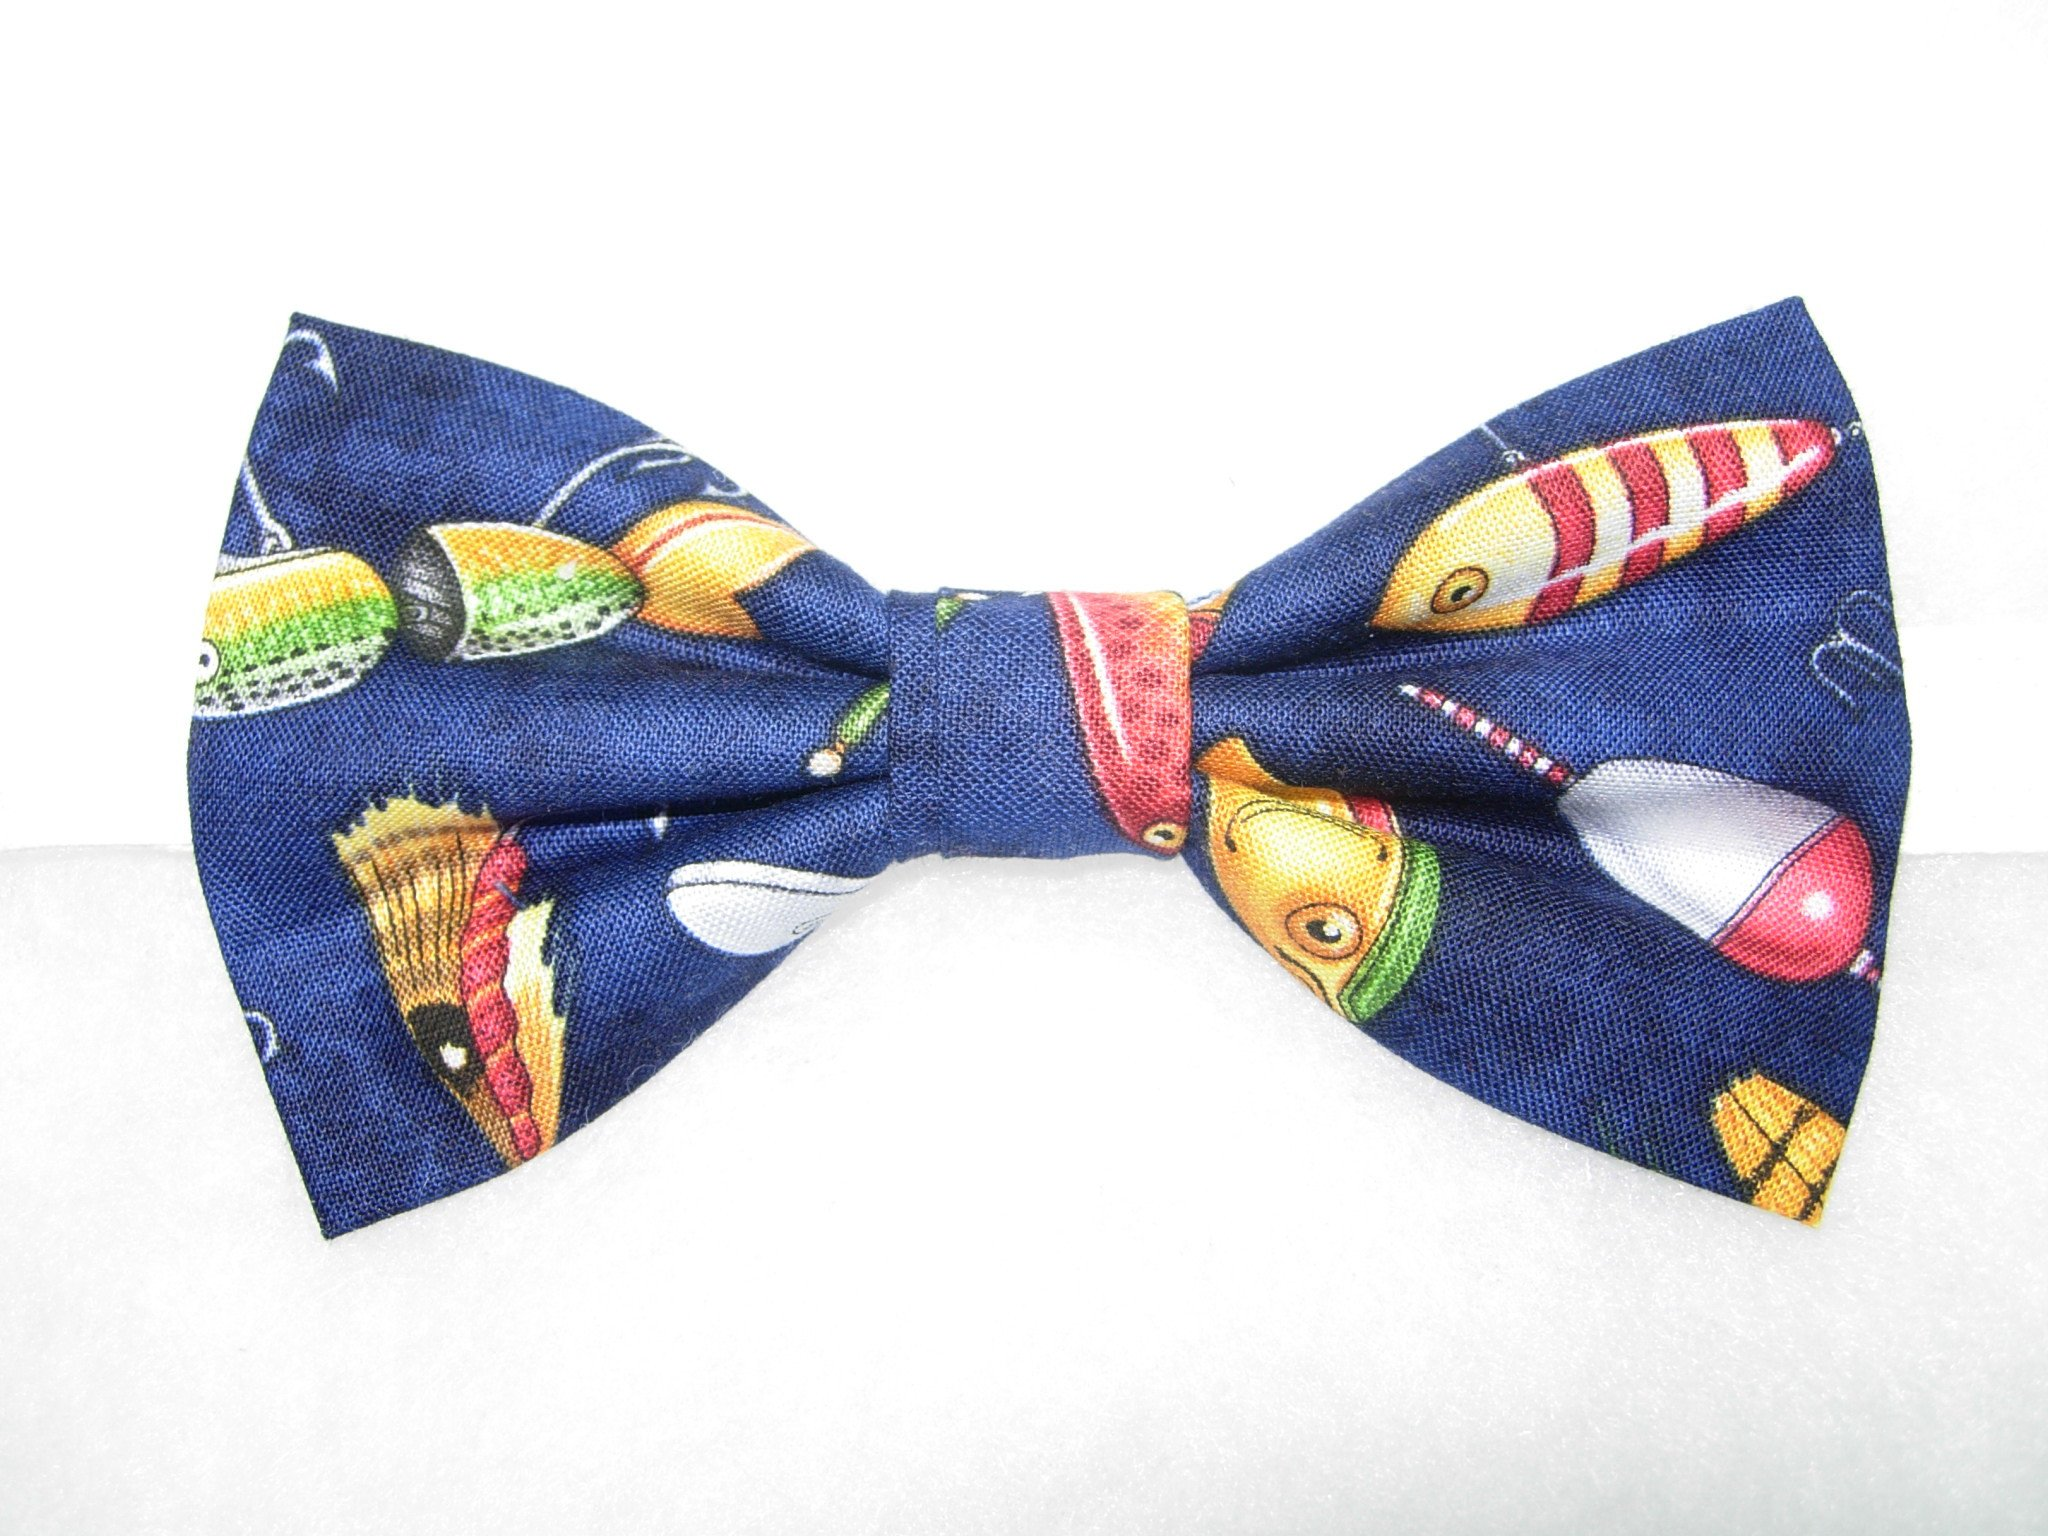 Fly Fishing Bow Tie/ Men's Bow Tie/ Lure Bow Tie/ Fishing Lure Bow Tie/ Groomsmen Gift/ Black Dog Bow Tie lEIM9